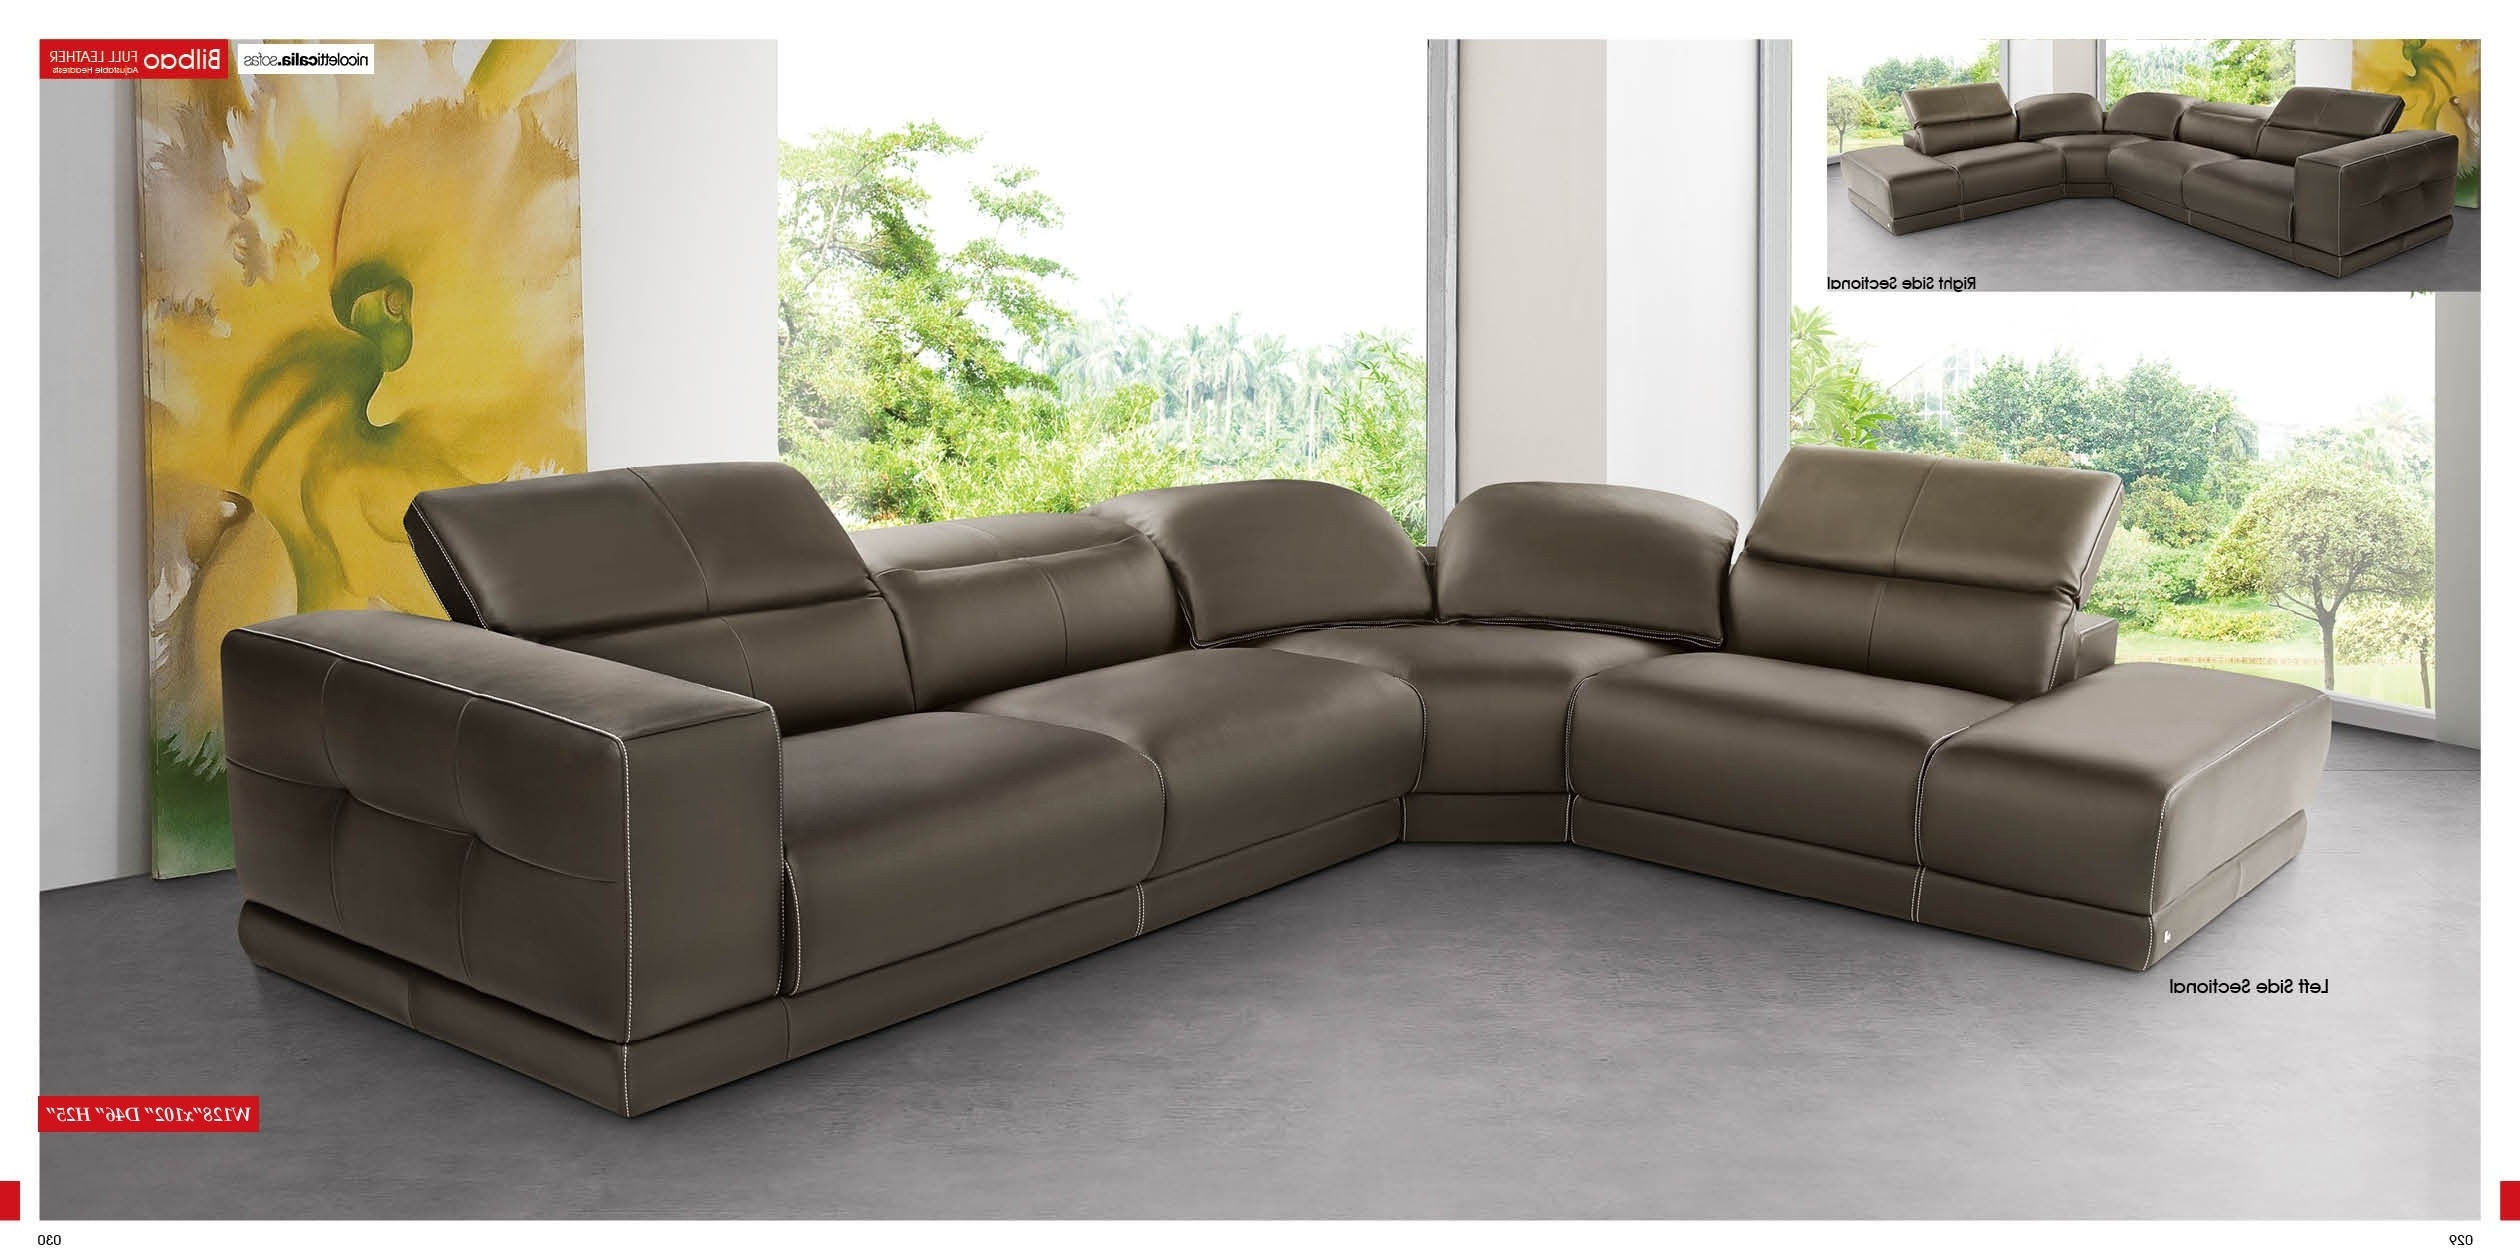 Furniture : Sectional Sofa 120 Sectional Couch Guelph Recliner 3 Regarding Well Known Guelph Sectional Sofas (View 7 of 20)